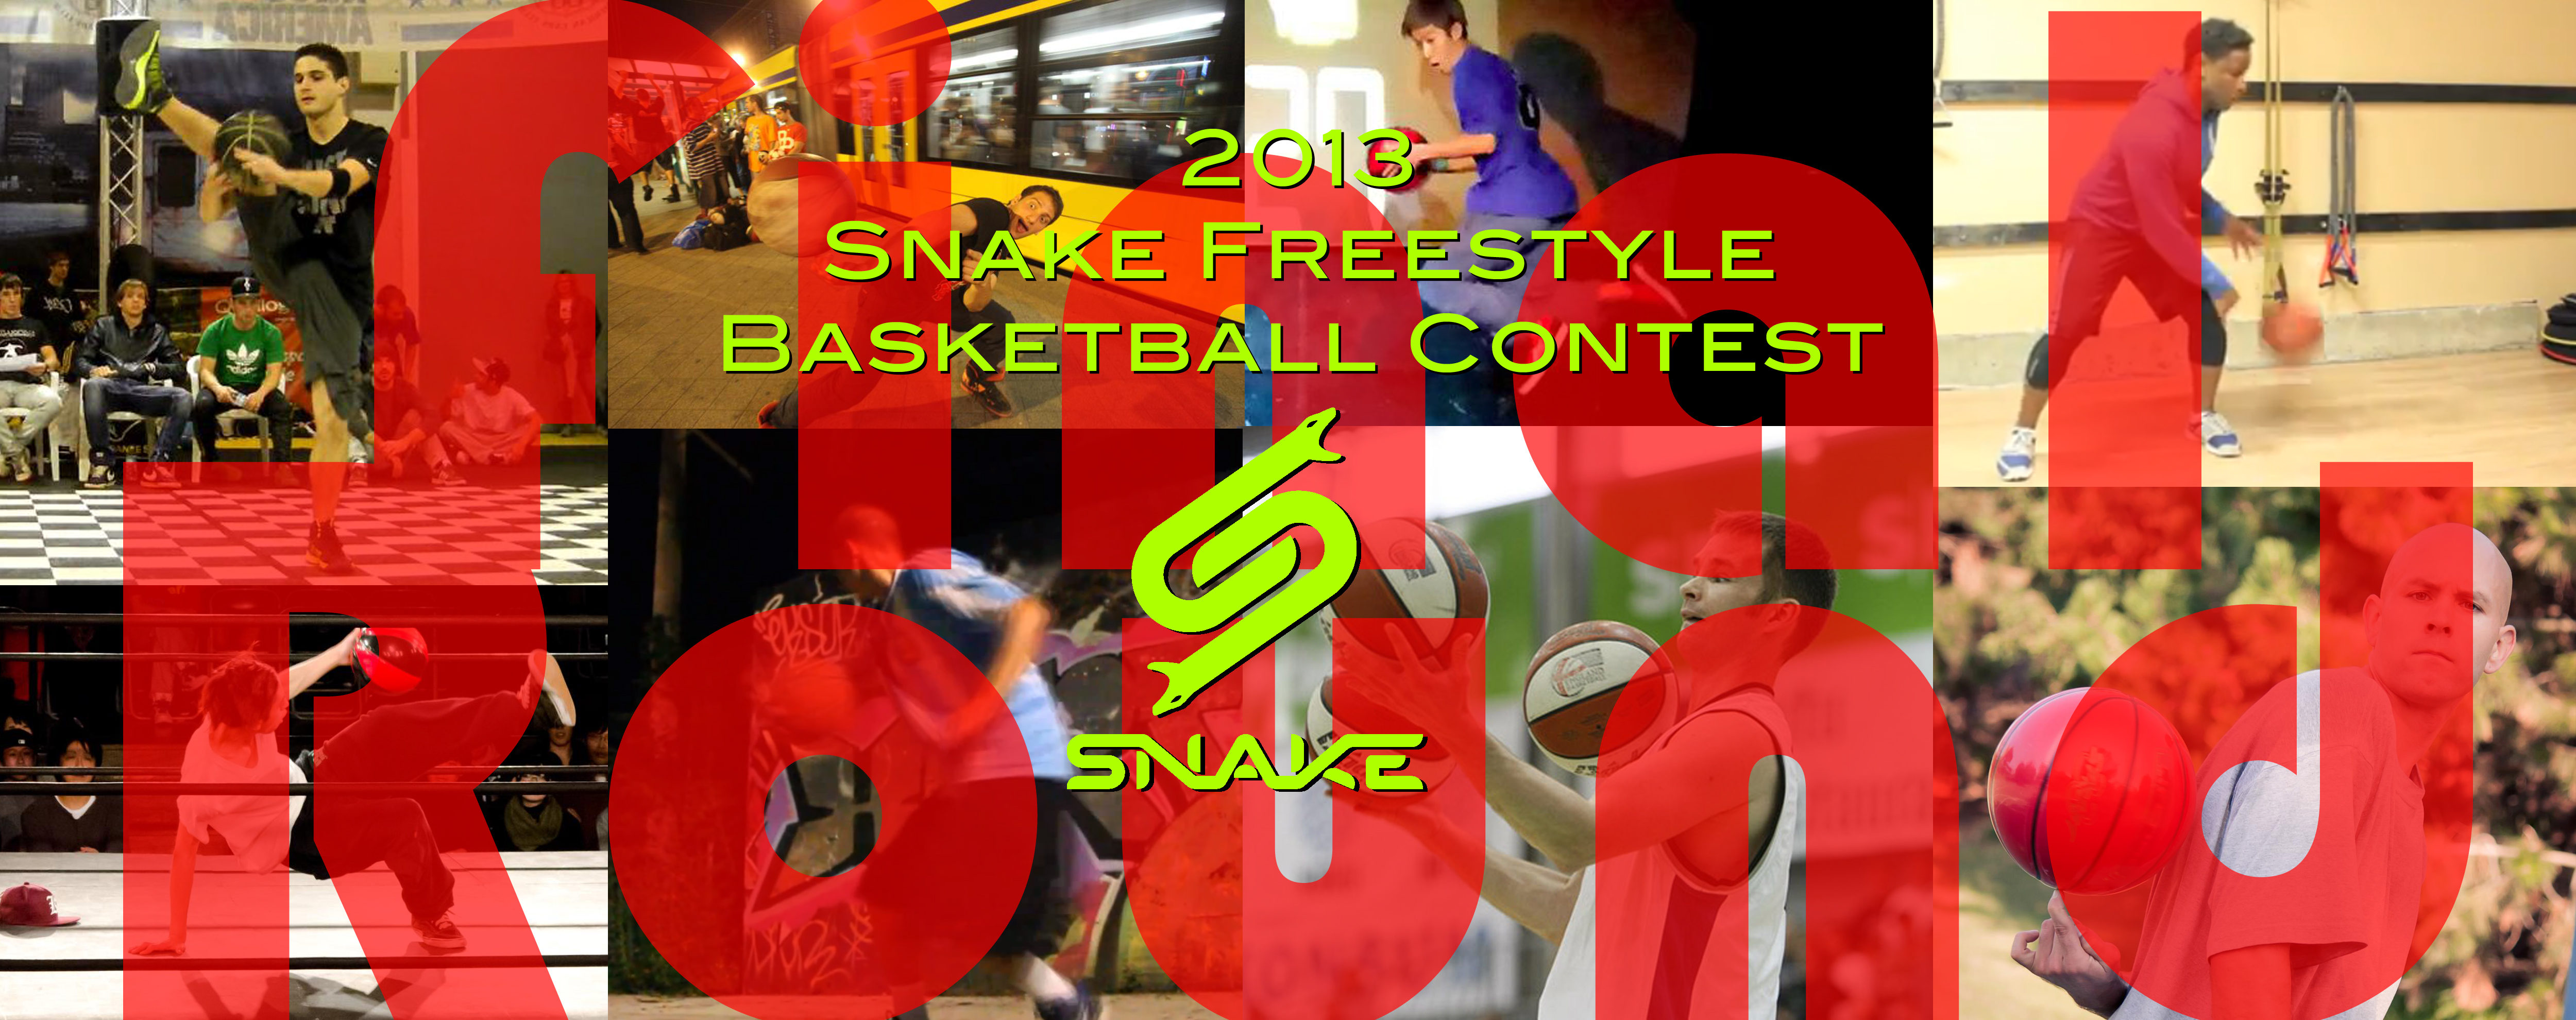 2013 Snake Freestyle Basketball Contest FINAL ROUND